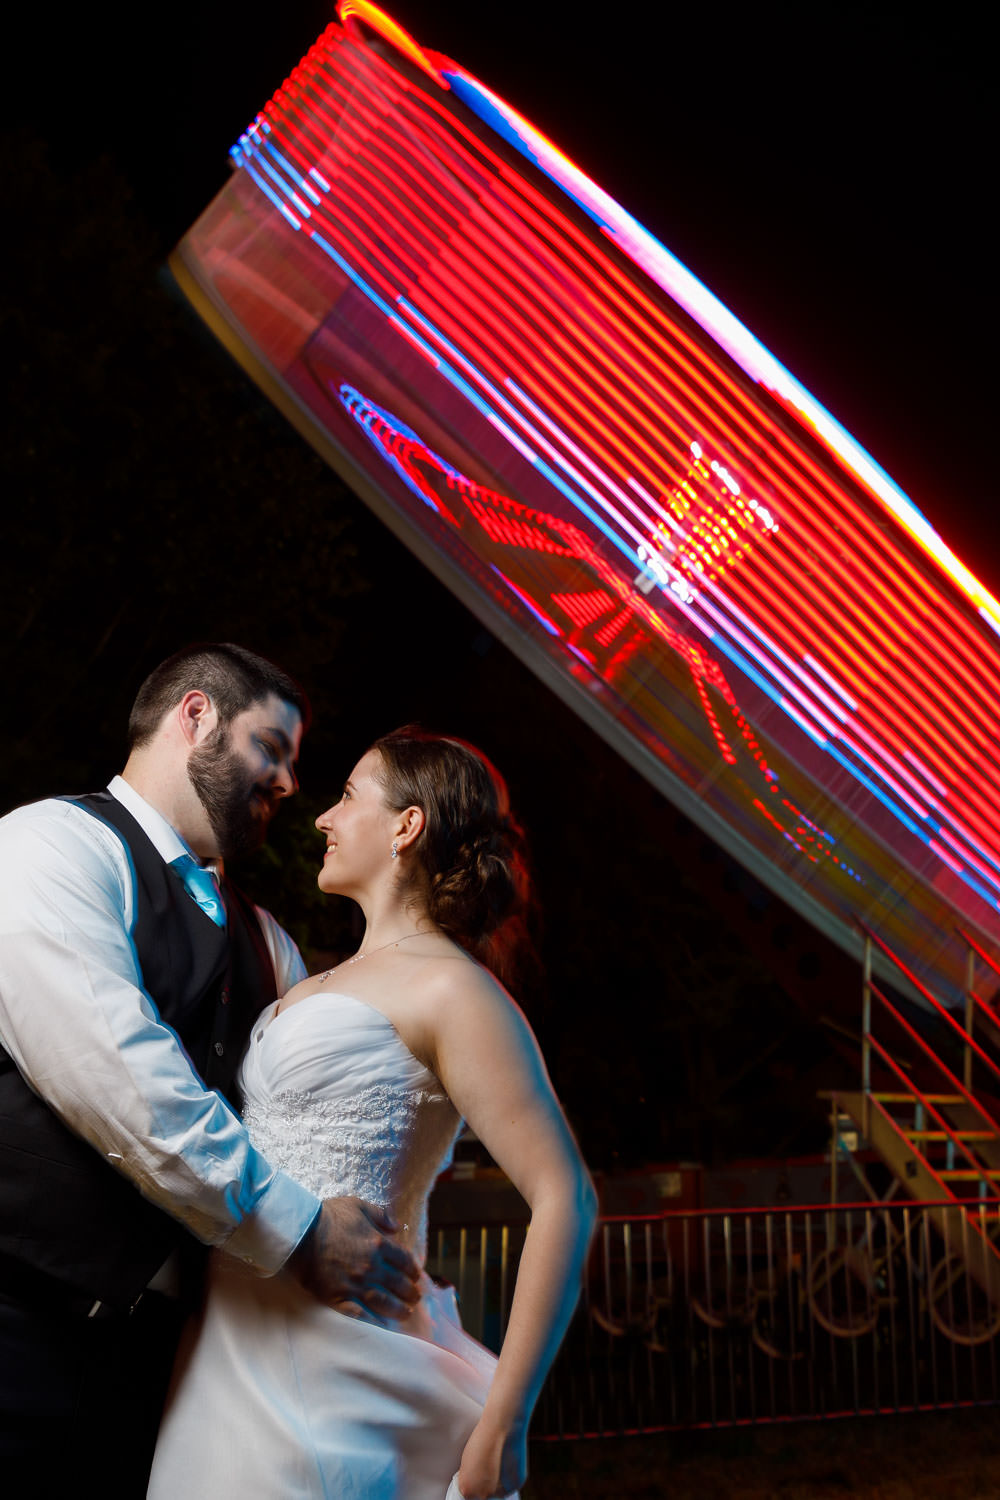 Bride and Groom looking into each others eyes with spinning tilt-a-wheel in background